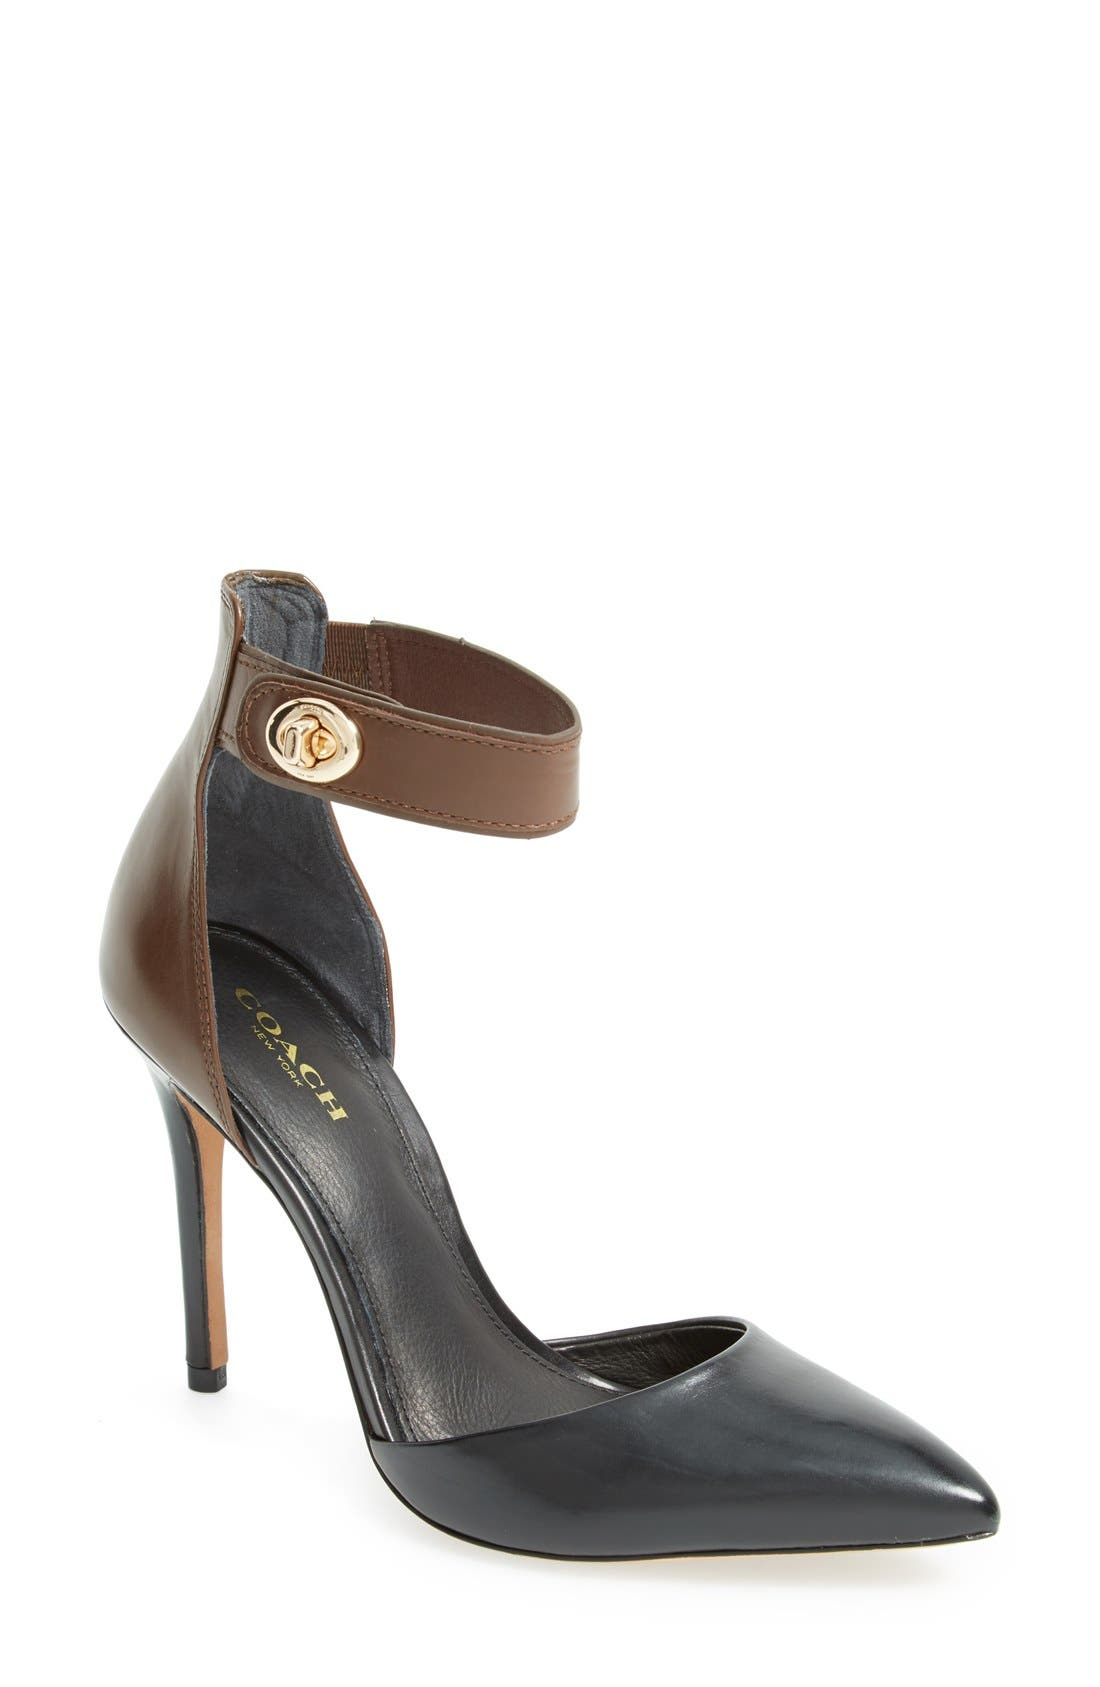 Alternate Image 1 Selected - COACH 'Houston' Two-Tone Leather Ankle Strap Pump (Women)